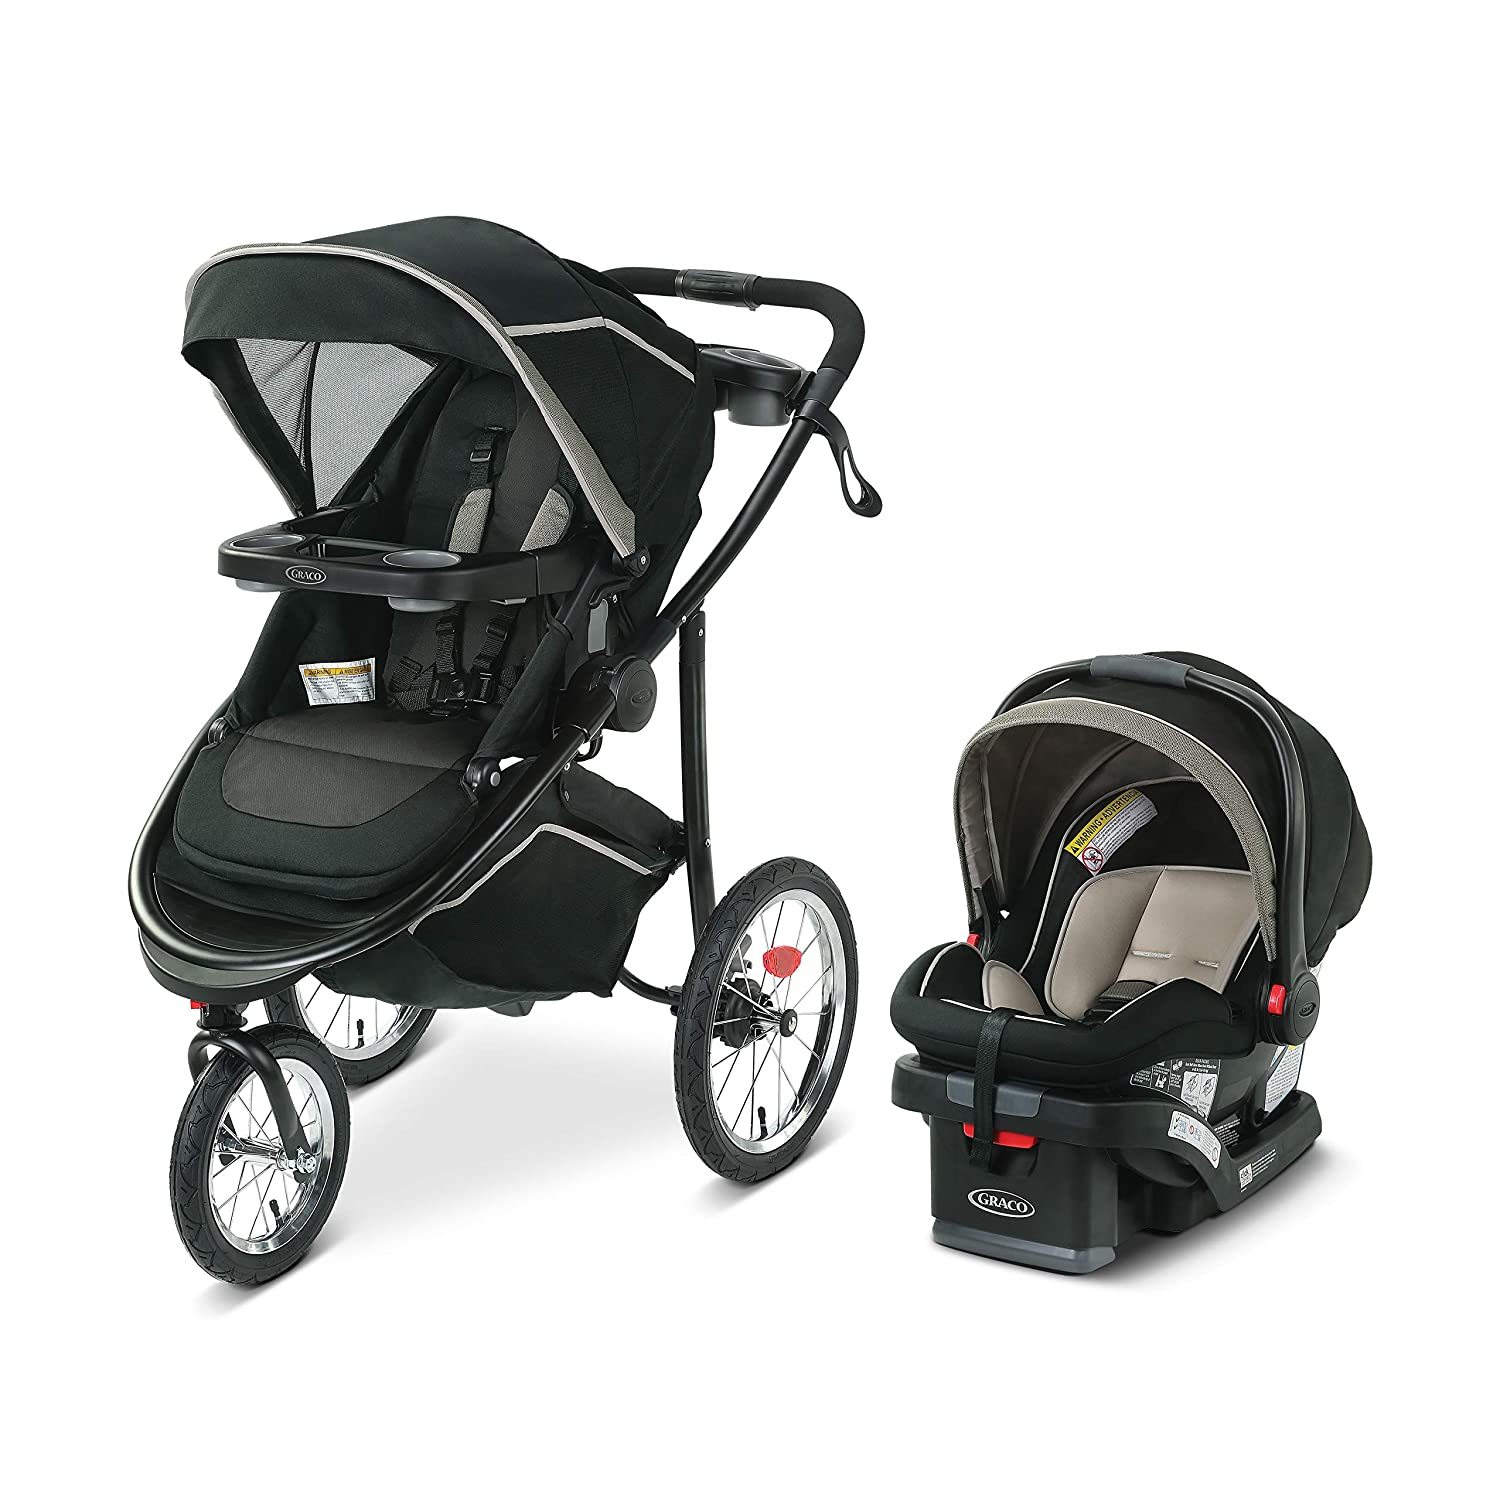 Graco Modes Jogger 2.0 Travel System Includes Jogging Stroller and SnugRide SnugLock 35 LX Infant Car Seat, Haven